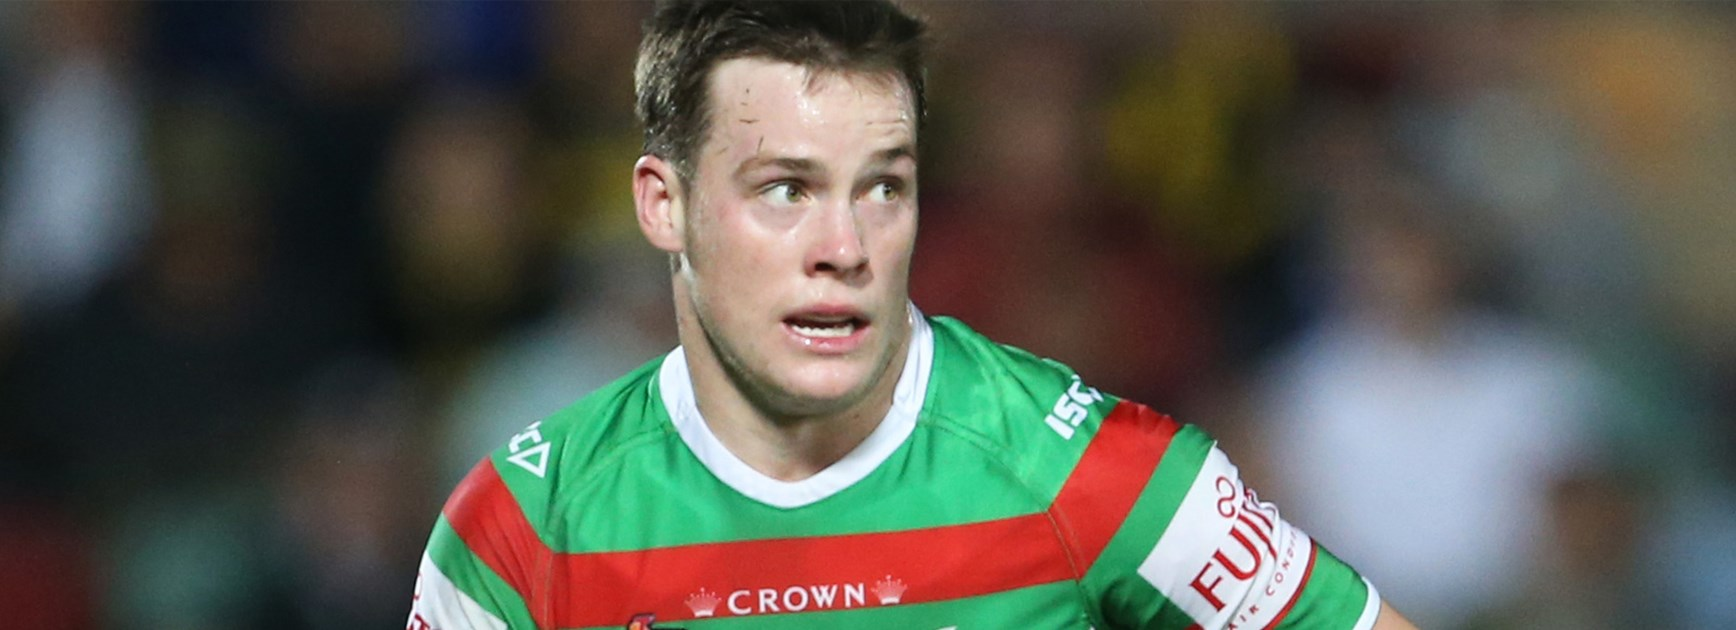 Luke Keary could be facing a shoulder charge ban after South Sydney's win over the Cowboys.